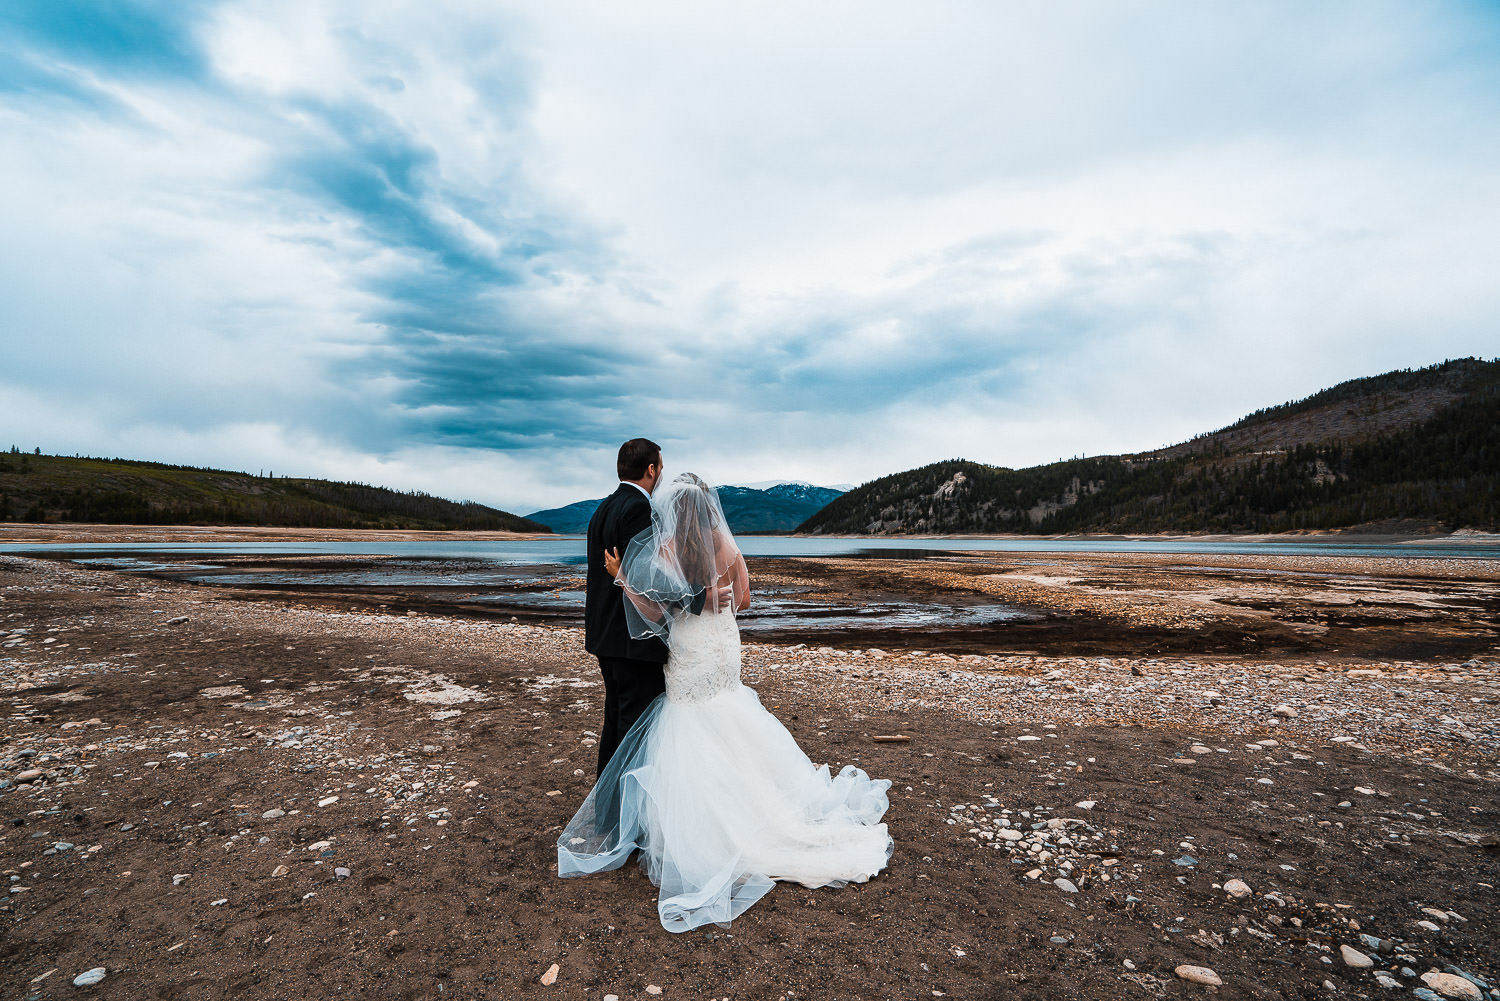 Elopement First Look | Run Wild With Me Photography